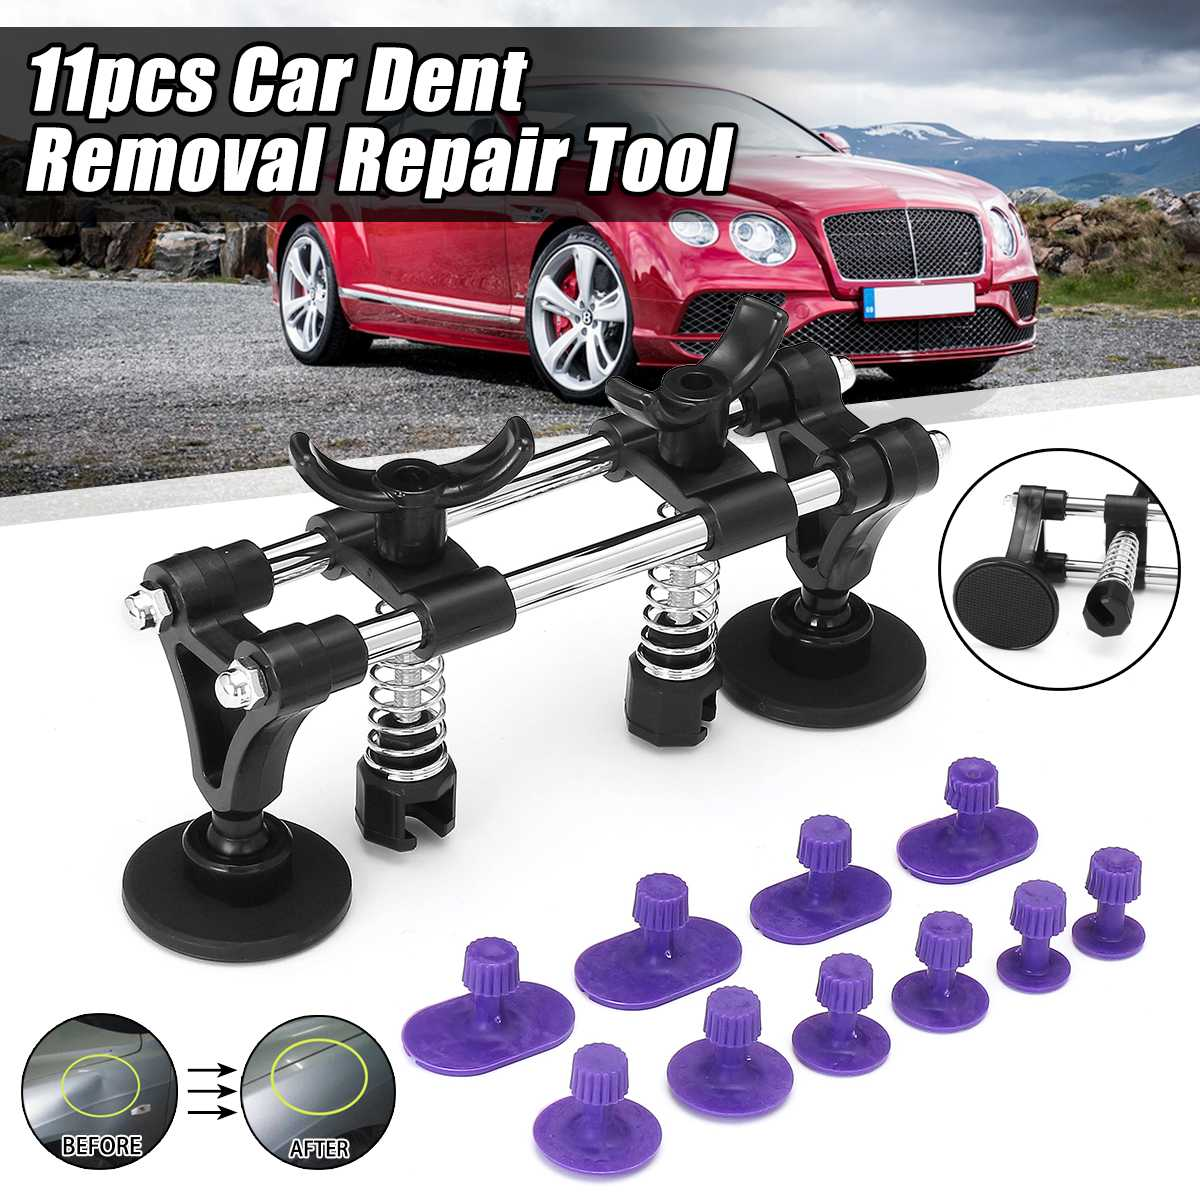 New Paintless Dent Repair Dent Puller Kit Car Auto Body Removal Slide Suction Cup Bridge Set Damage Maintence Repair Tool Set